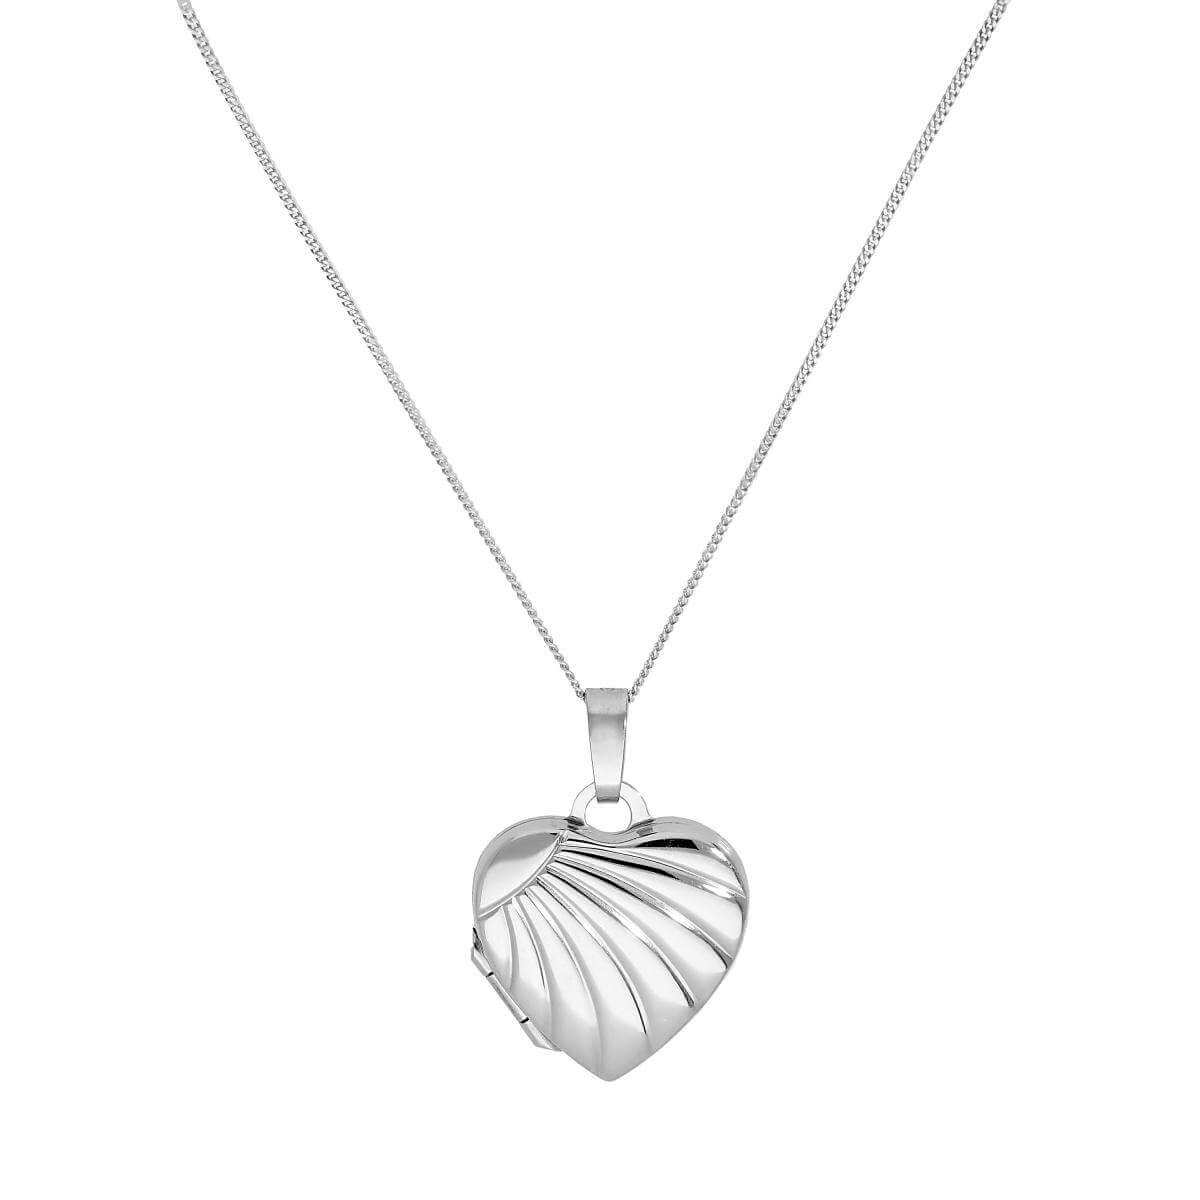 9ct White Gold Heart Locket on Chain with Rays of Sunlight Design 16 - 18 Inches